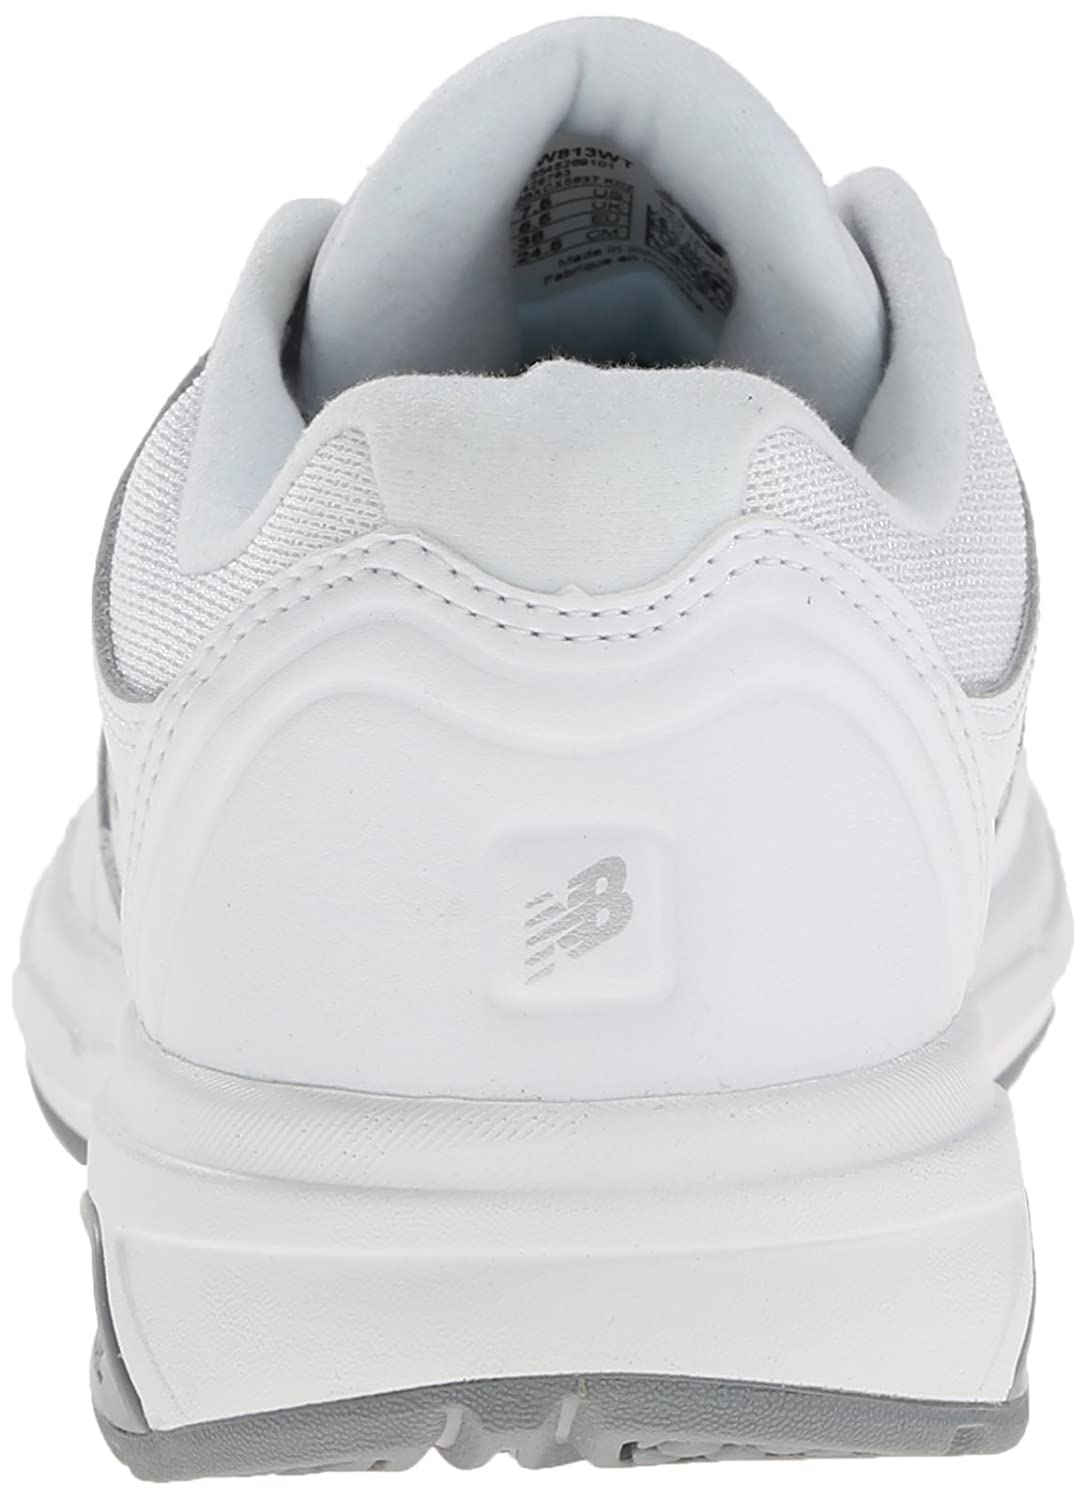 New Balance Women's 7 WW813 Walking Shoe B00LBZ7L46 7 Women's 2E US|White 2dc148